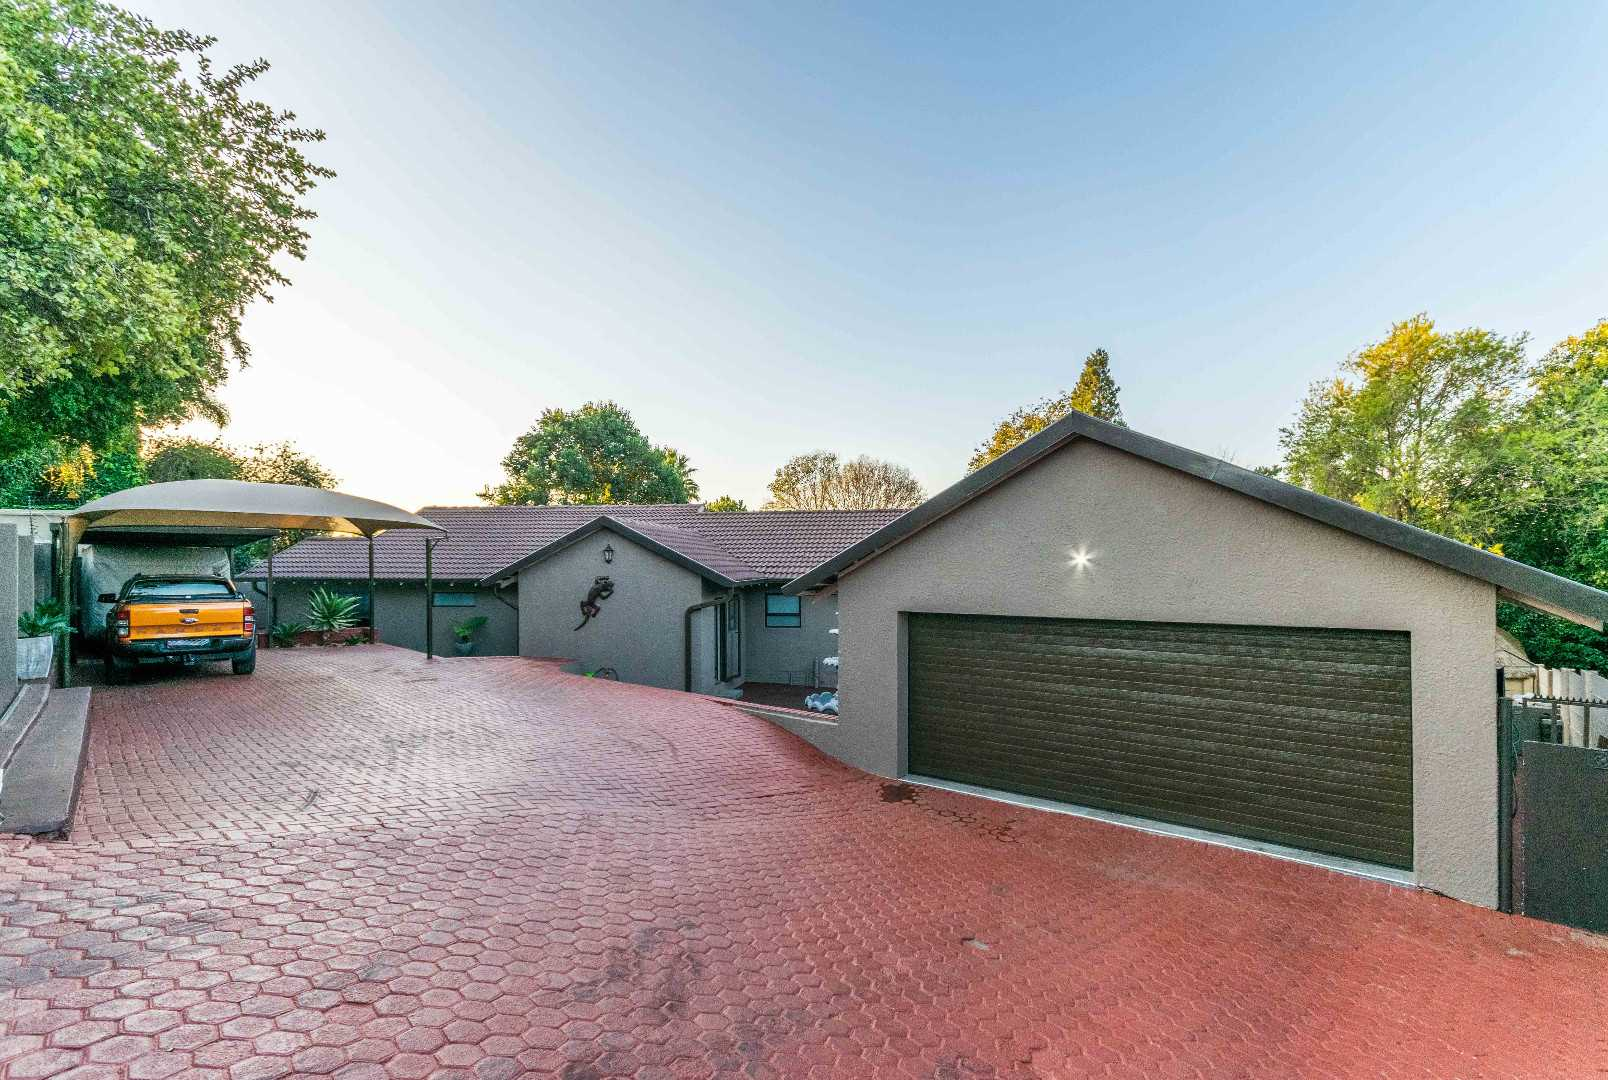 Road side of 12 Kransberg showing Double garage and Double Carport plus plenty extra secure parking